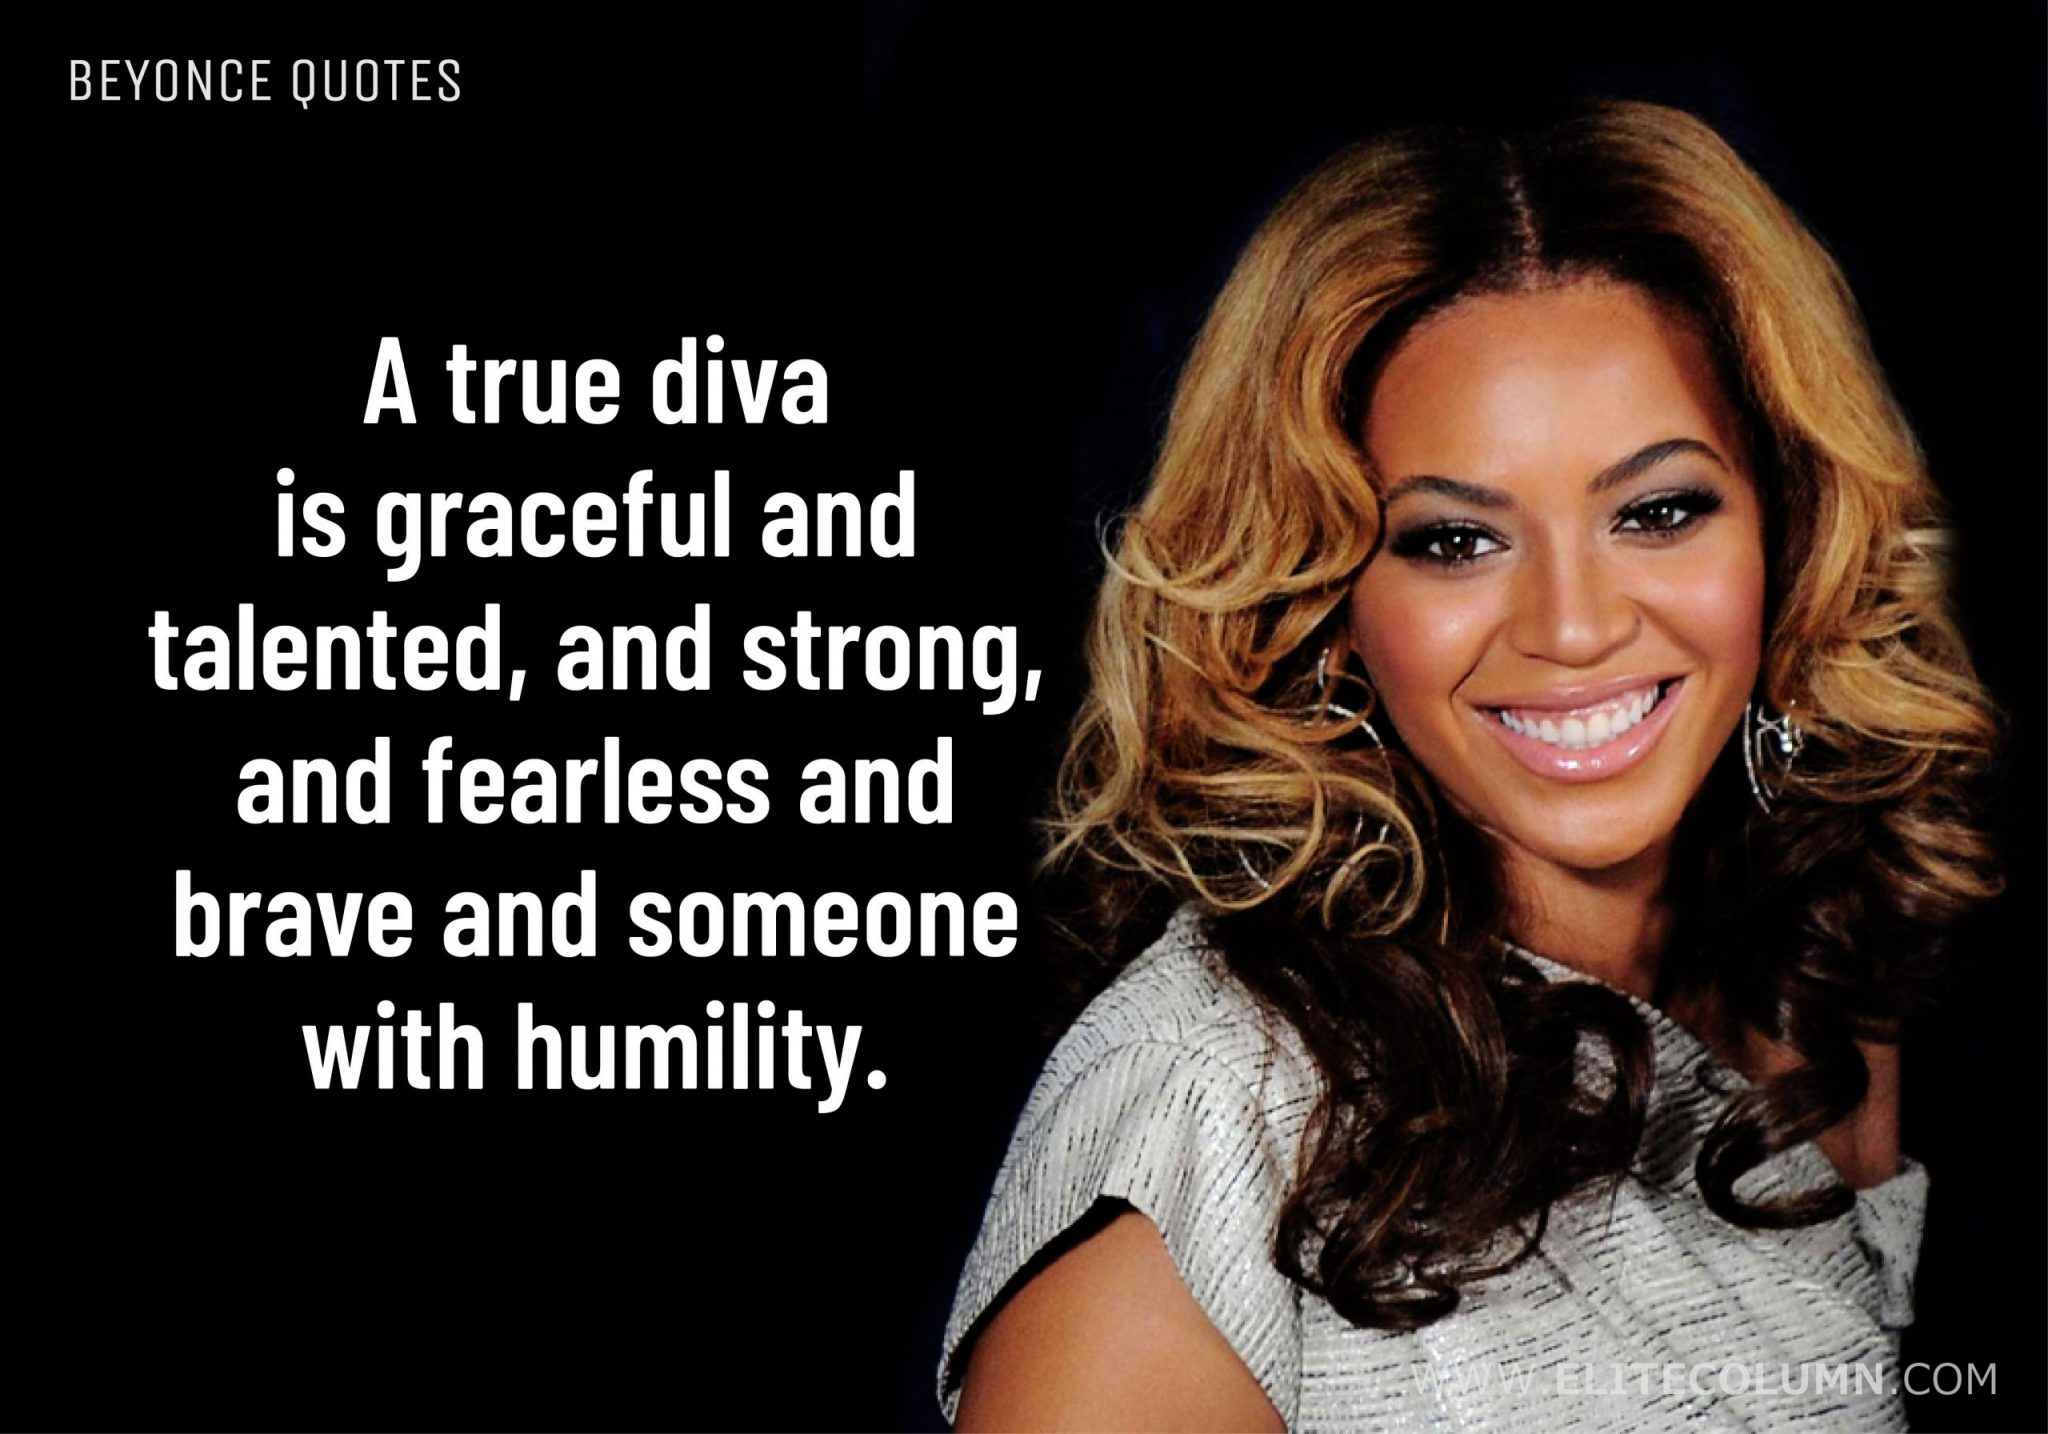 Beyonce Quotes (12)